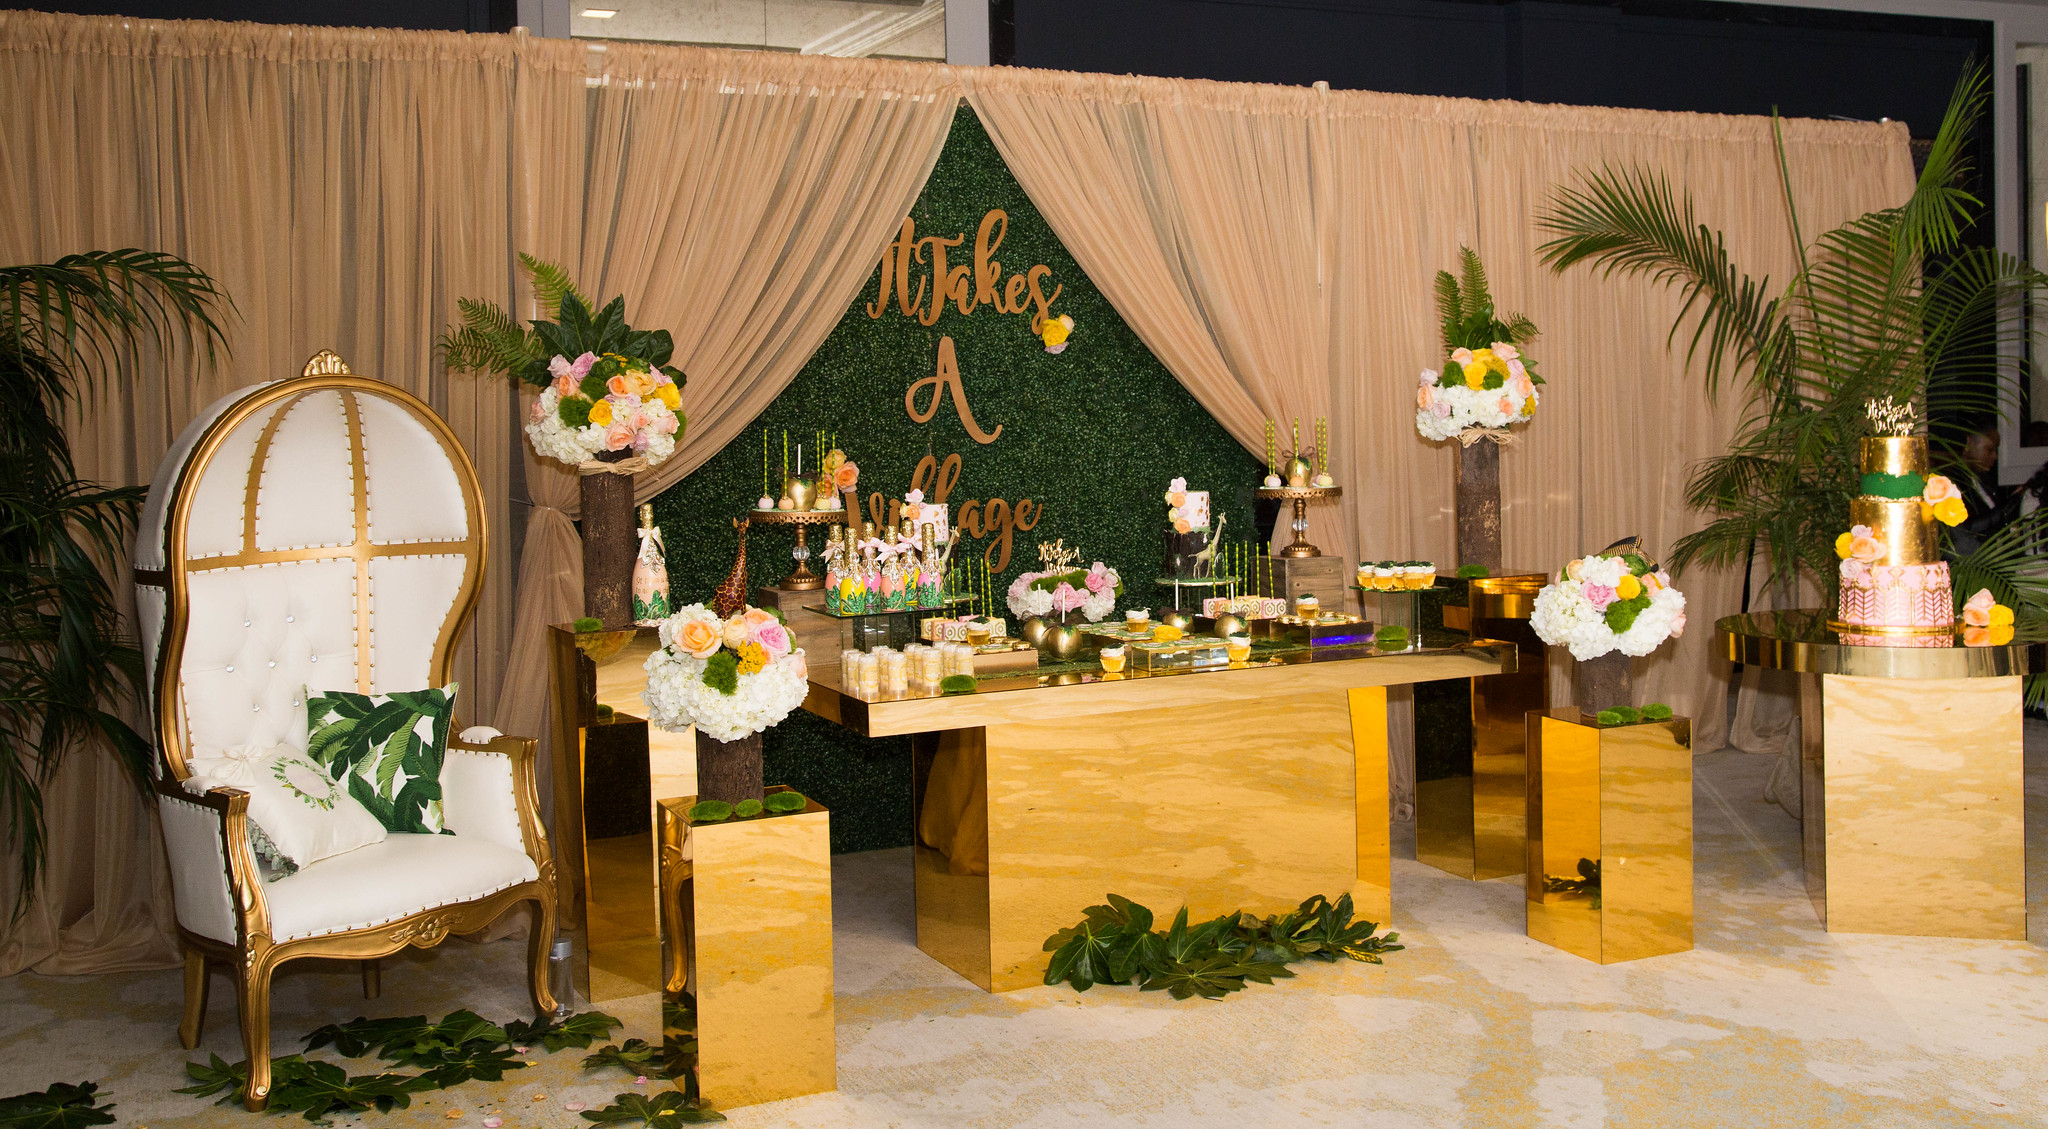 30ft Draping with Dome Chair